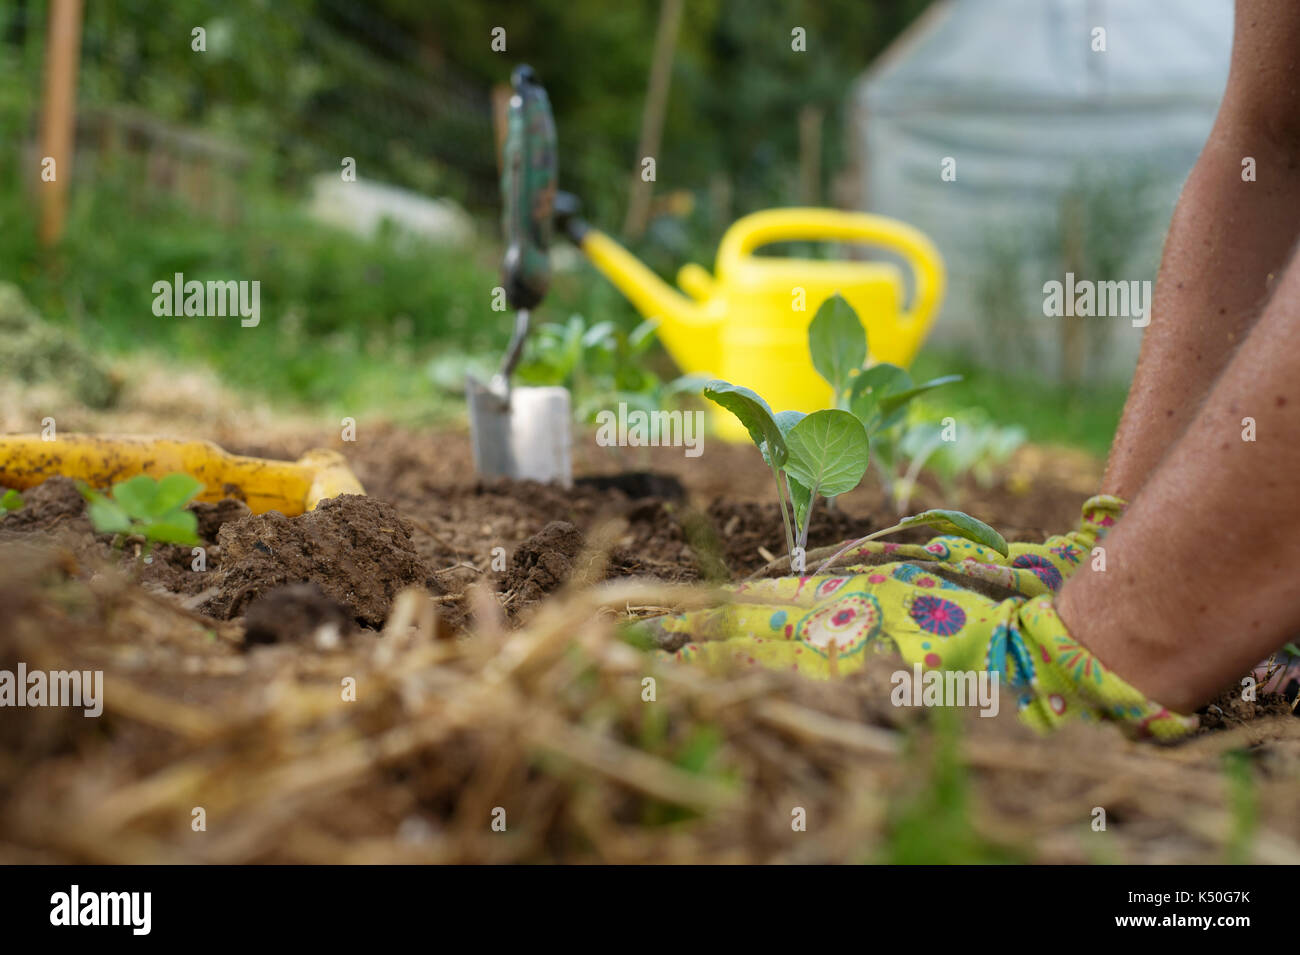 Gardener's hands planting cabbage seedlings in garden. Homegrown food, vvegetable, self-sufficient home, sustainable household concept. - Stock Image